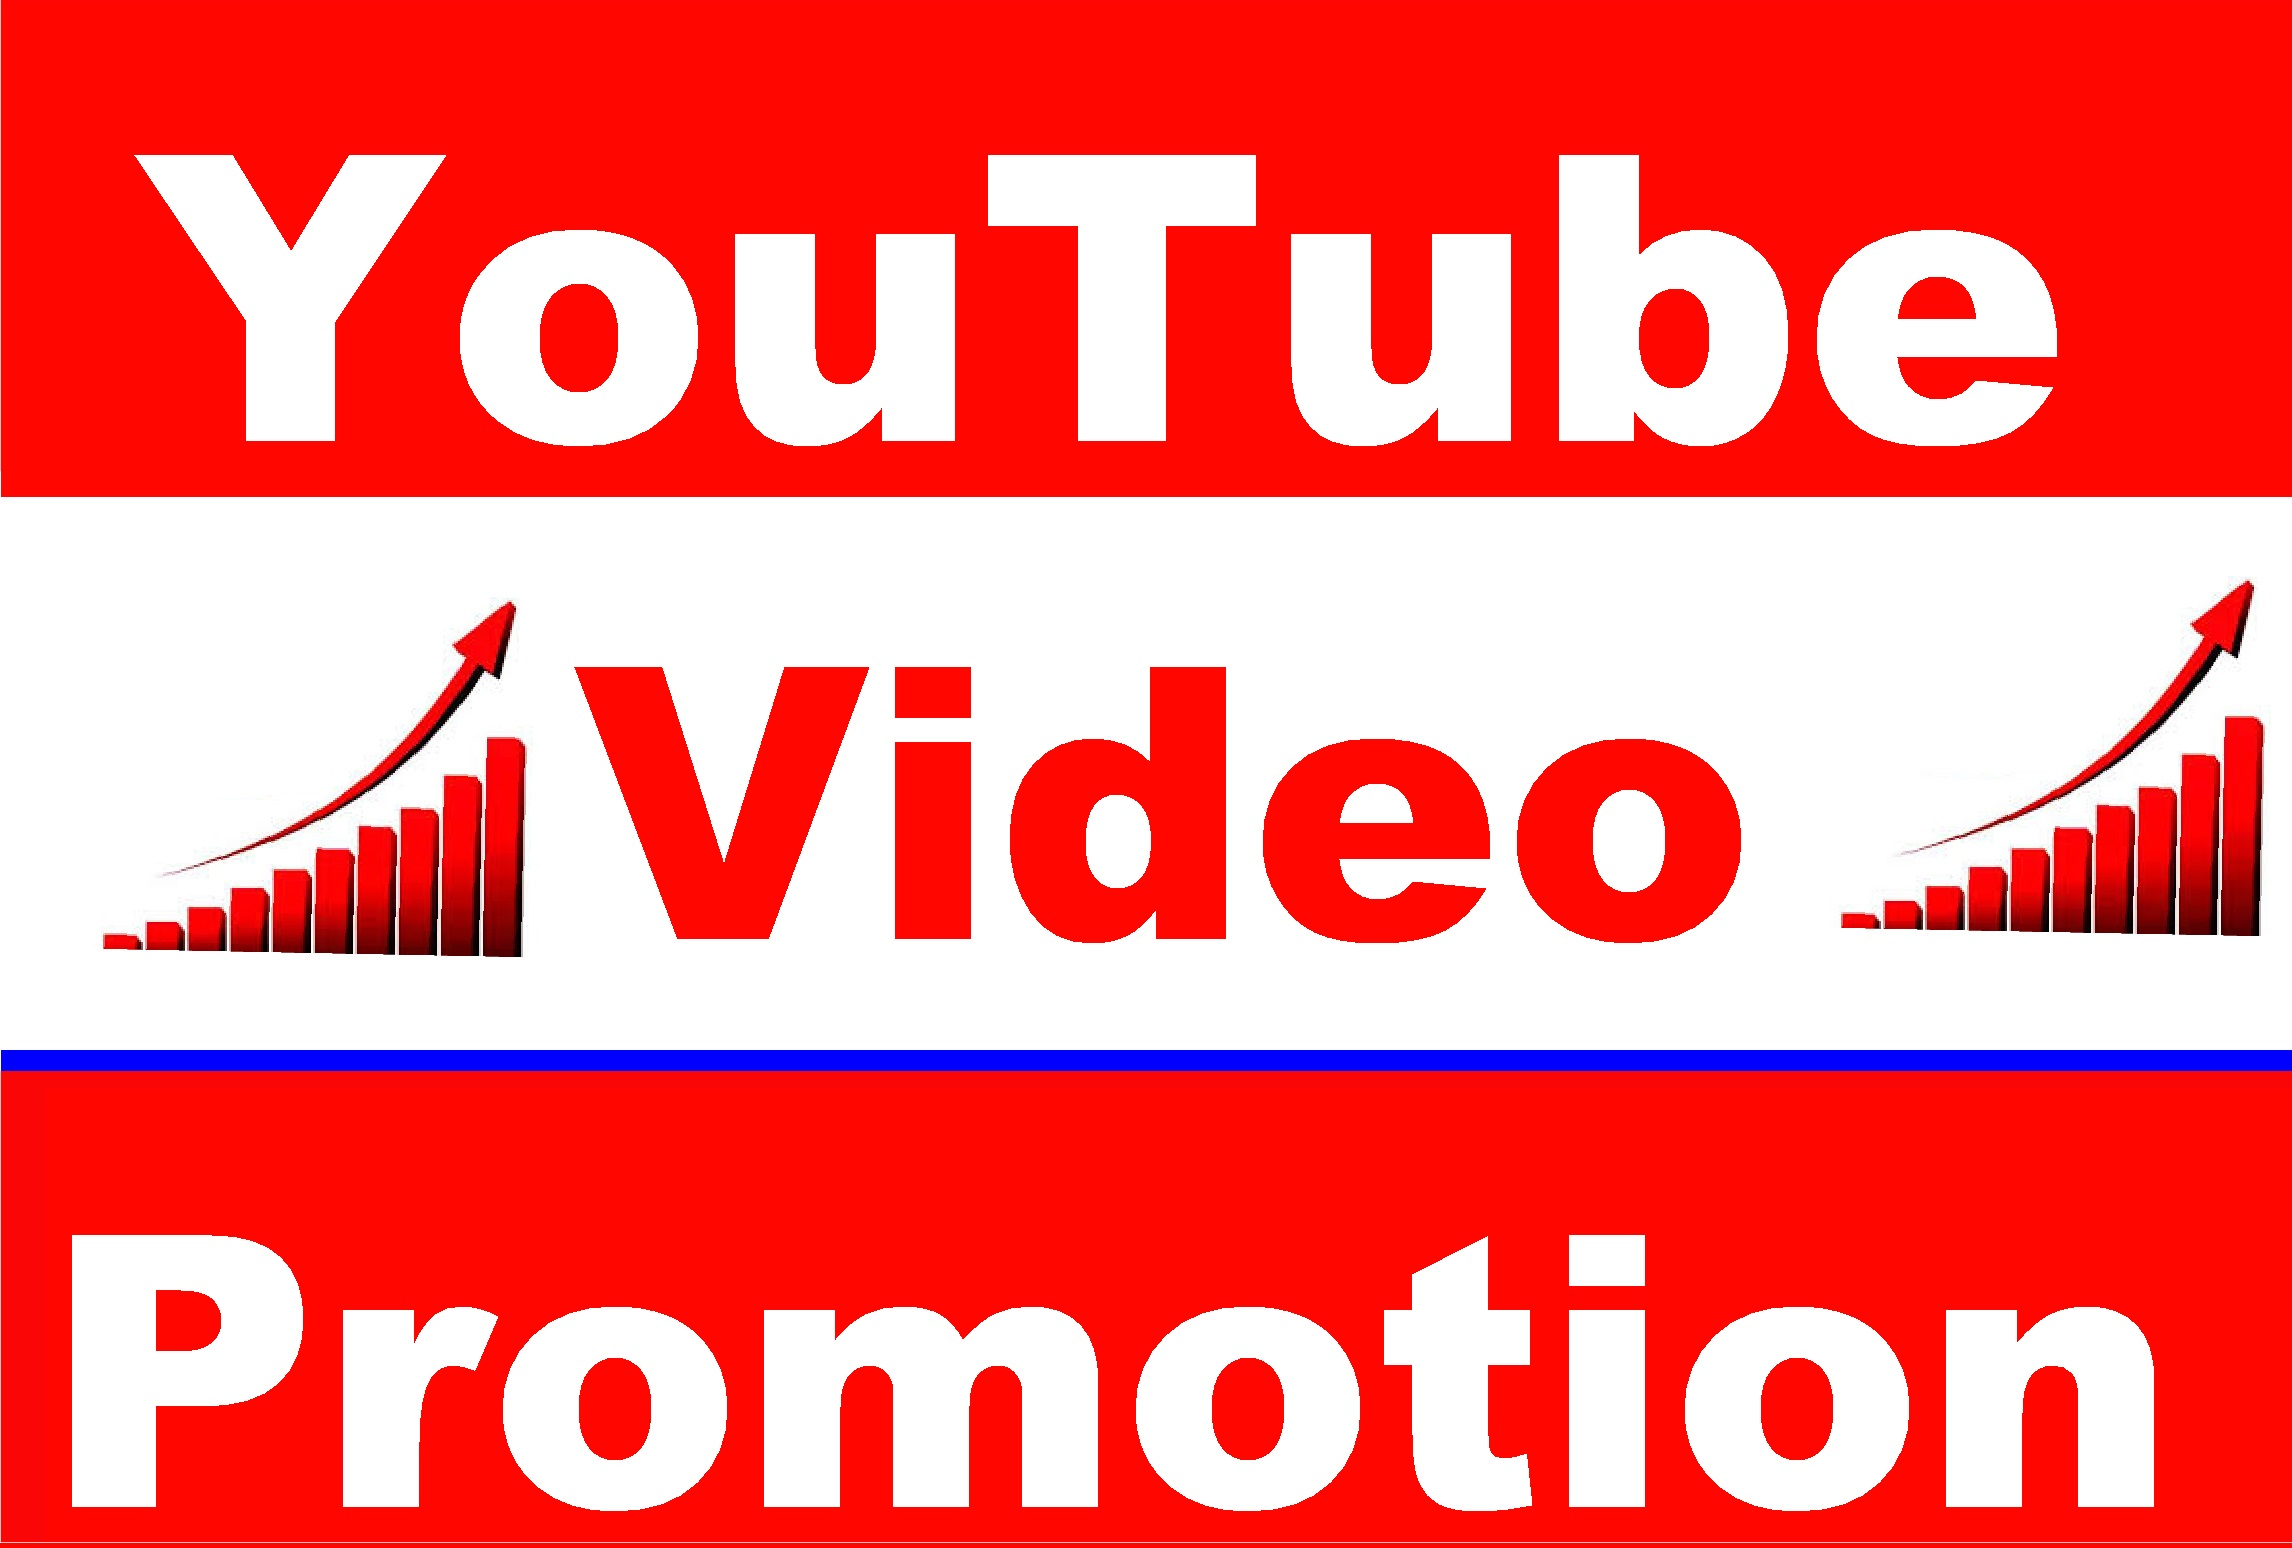 Organic YouTube Video Promotion High Quality Real Audience